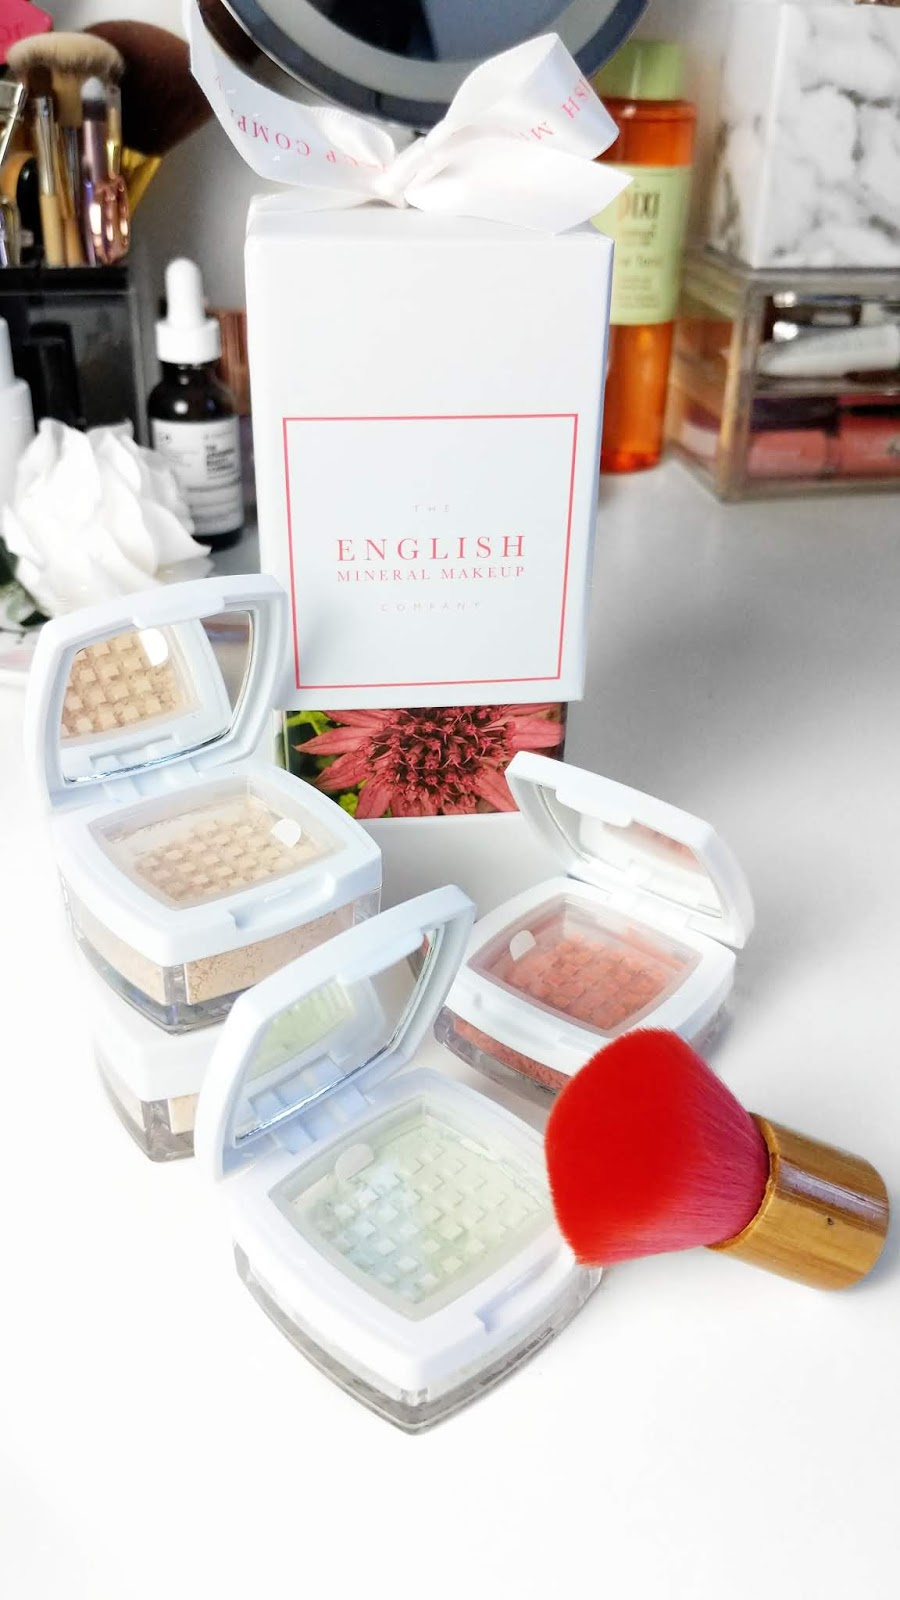 English-Mineral-Makeup-Company-Review